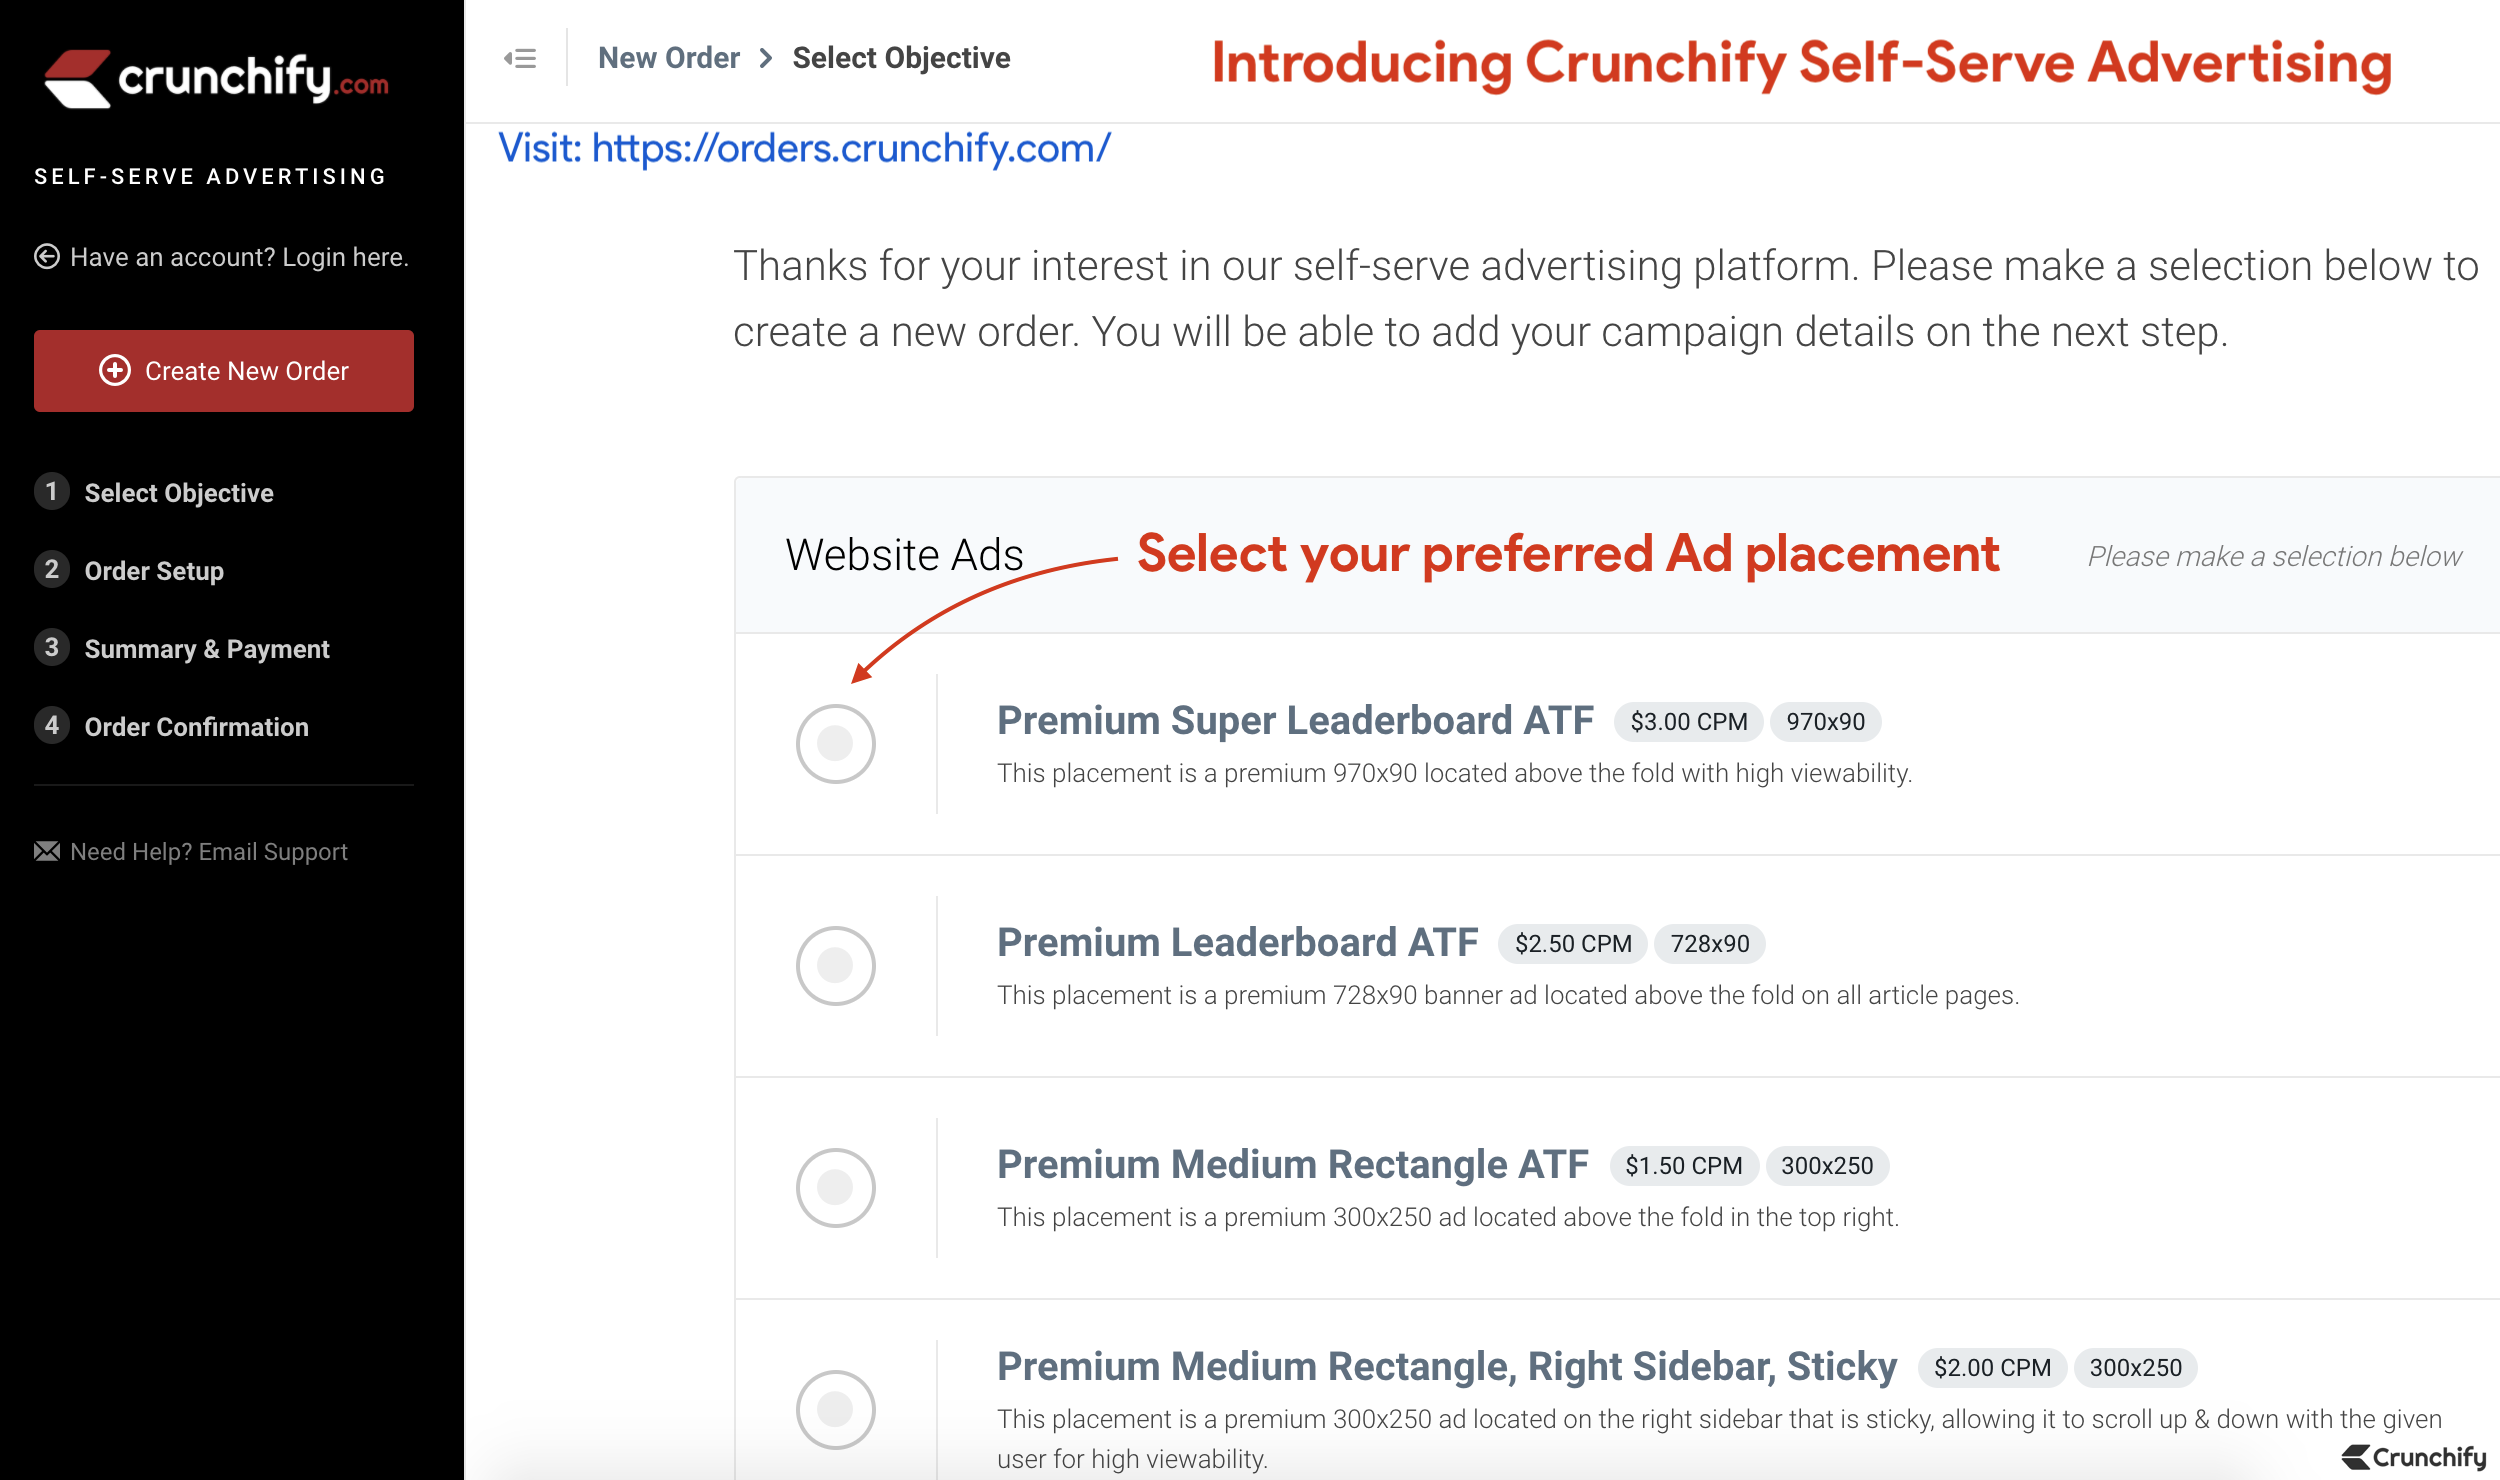 Introducing Crunchify Self-Serve Advertising